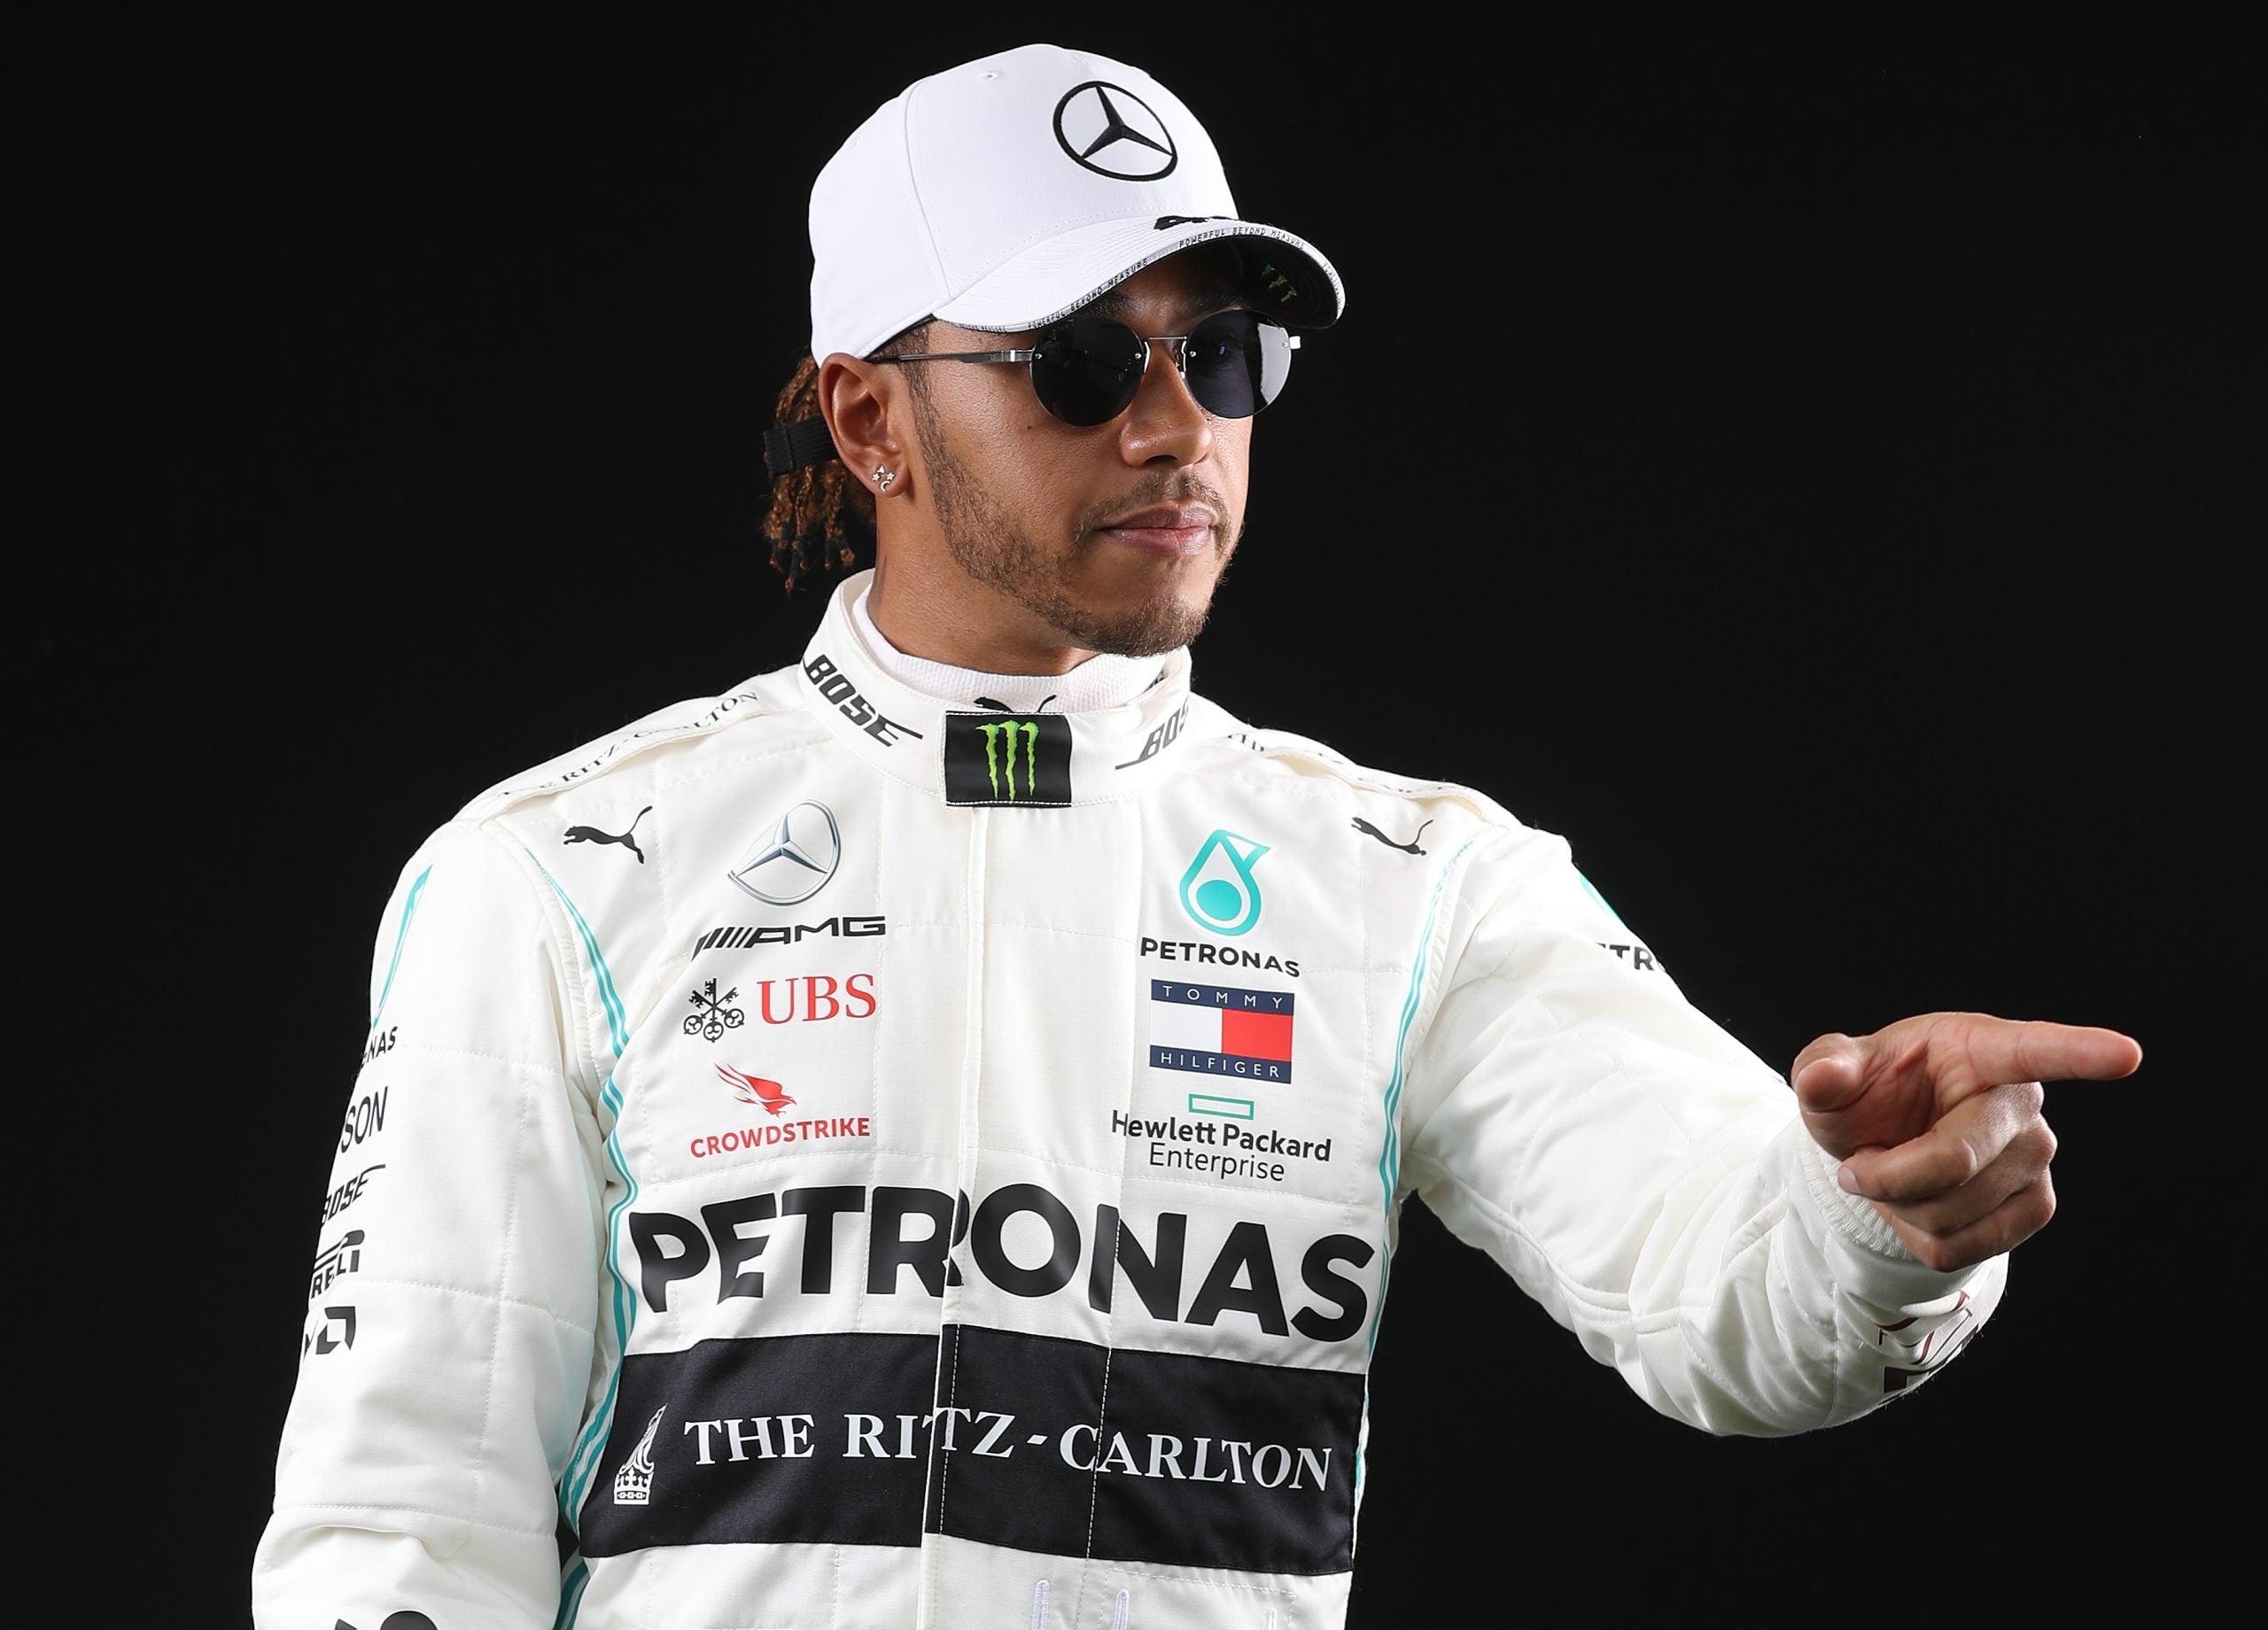 Lewis Hamilton is a record-breaking champion – so why is he still so widely disliked?